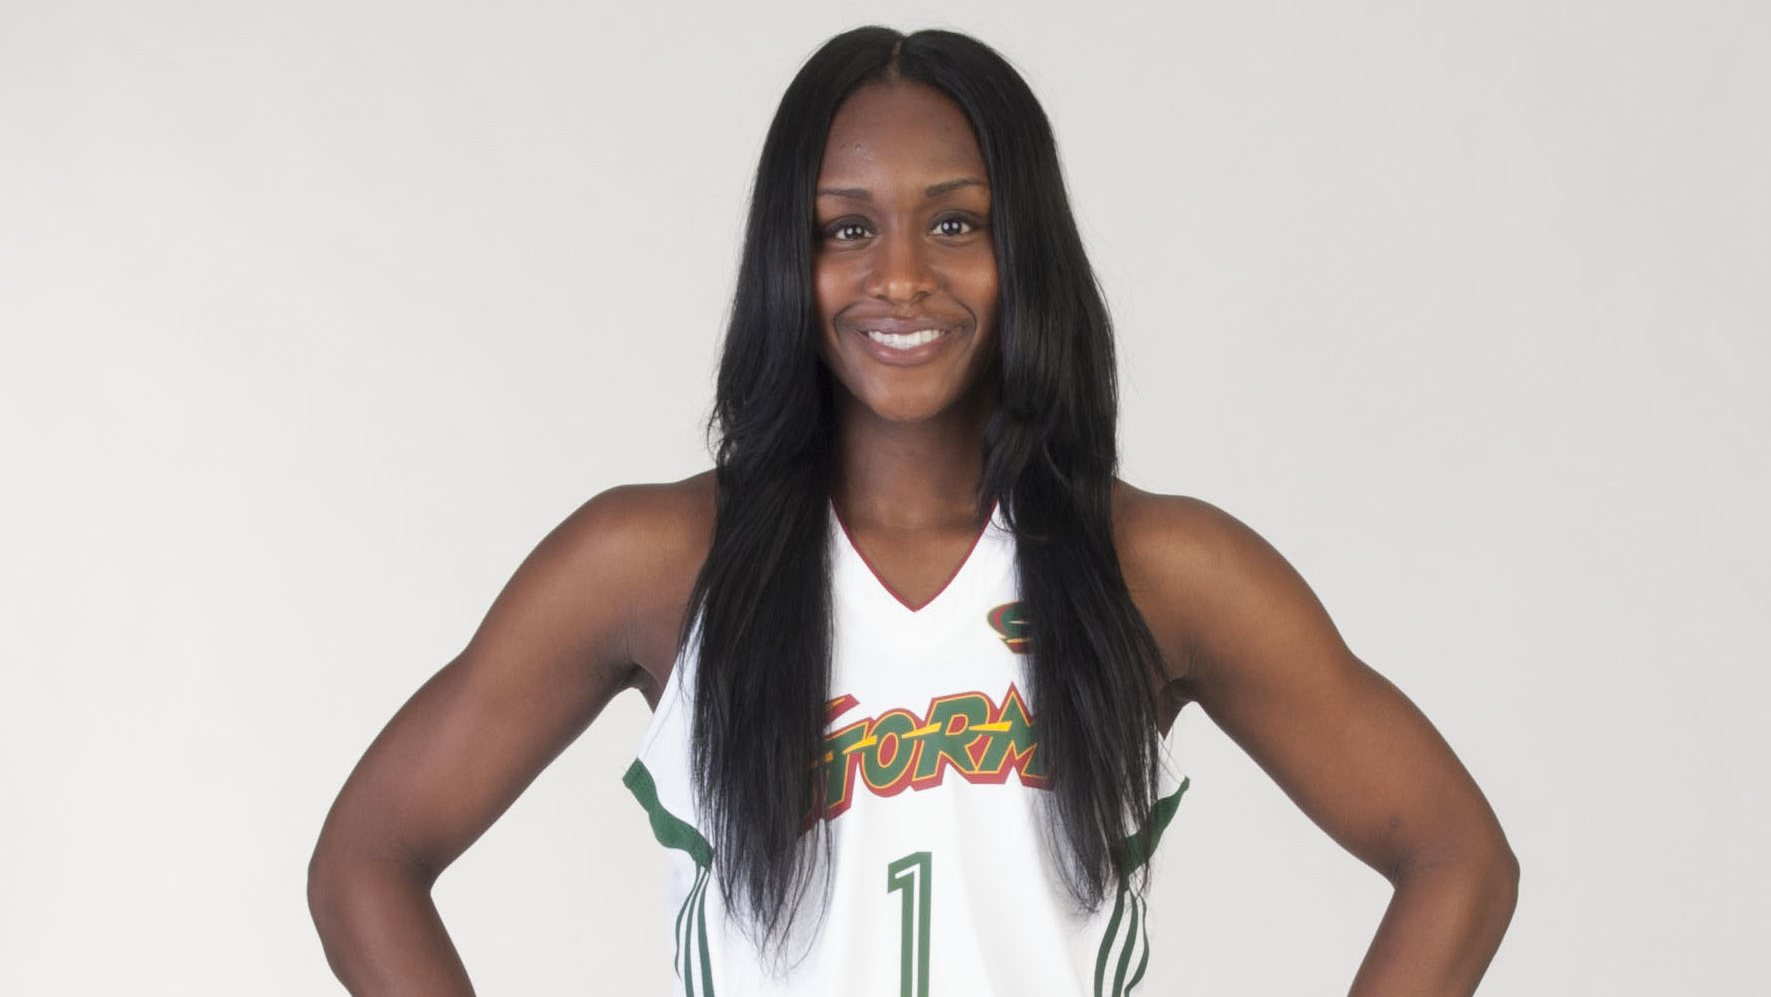 A Dishin & Swishin Q&A Session: Crystal Langhorne looks to keep the Storm rolling in LJ's absence